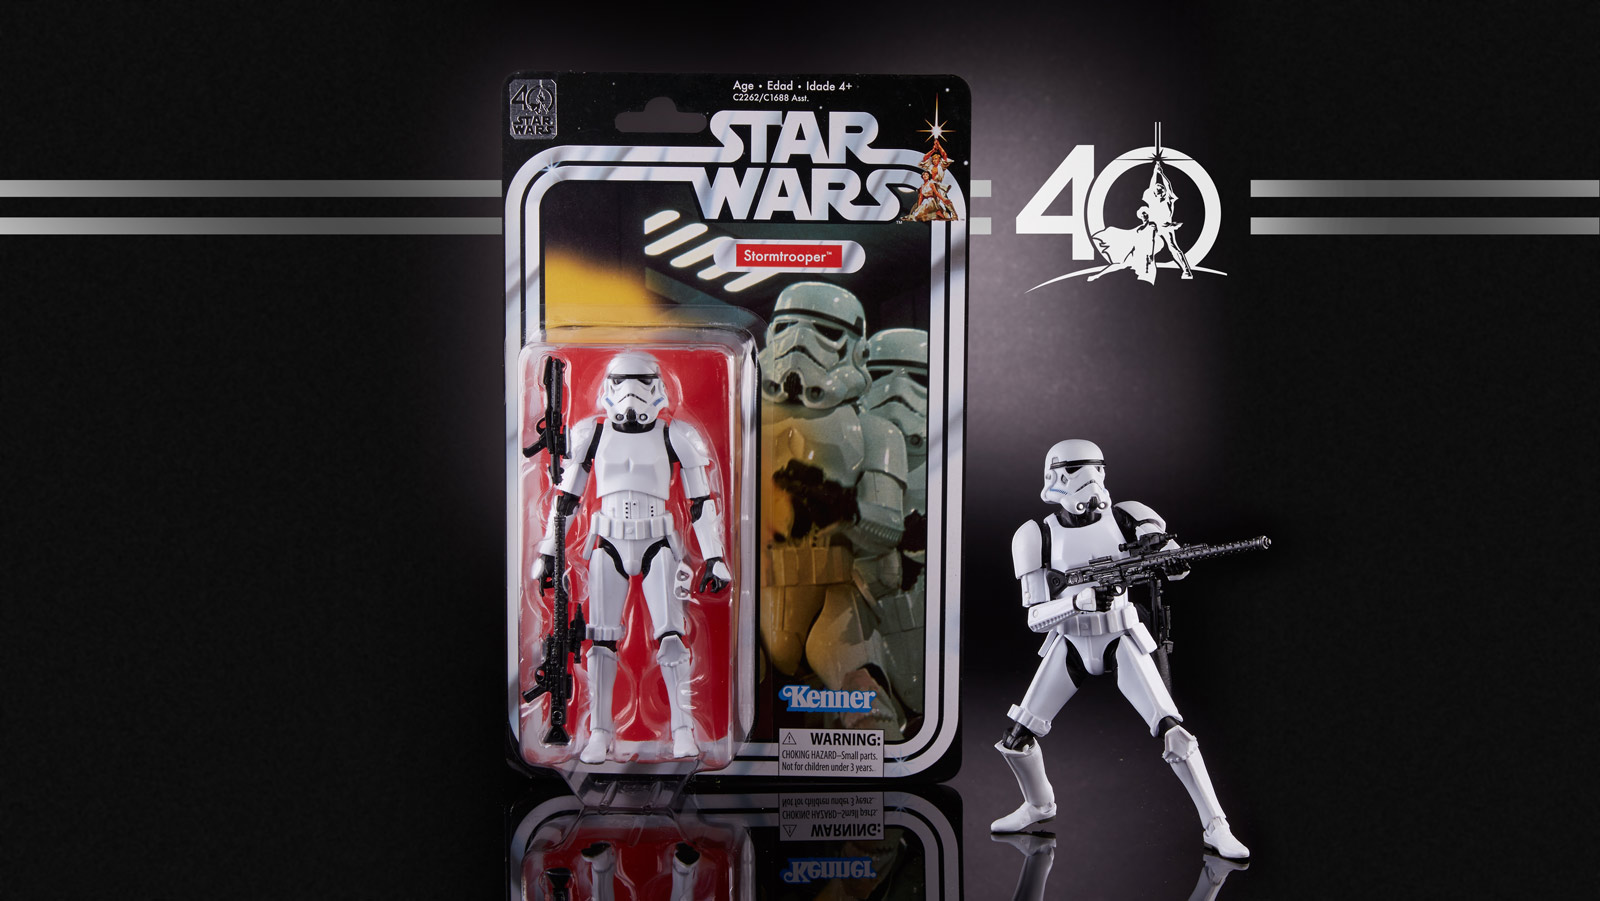 Hasbro Readies Star Wars Black Series Figures For 40th